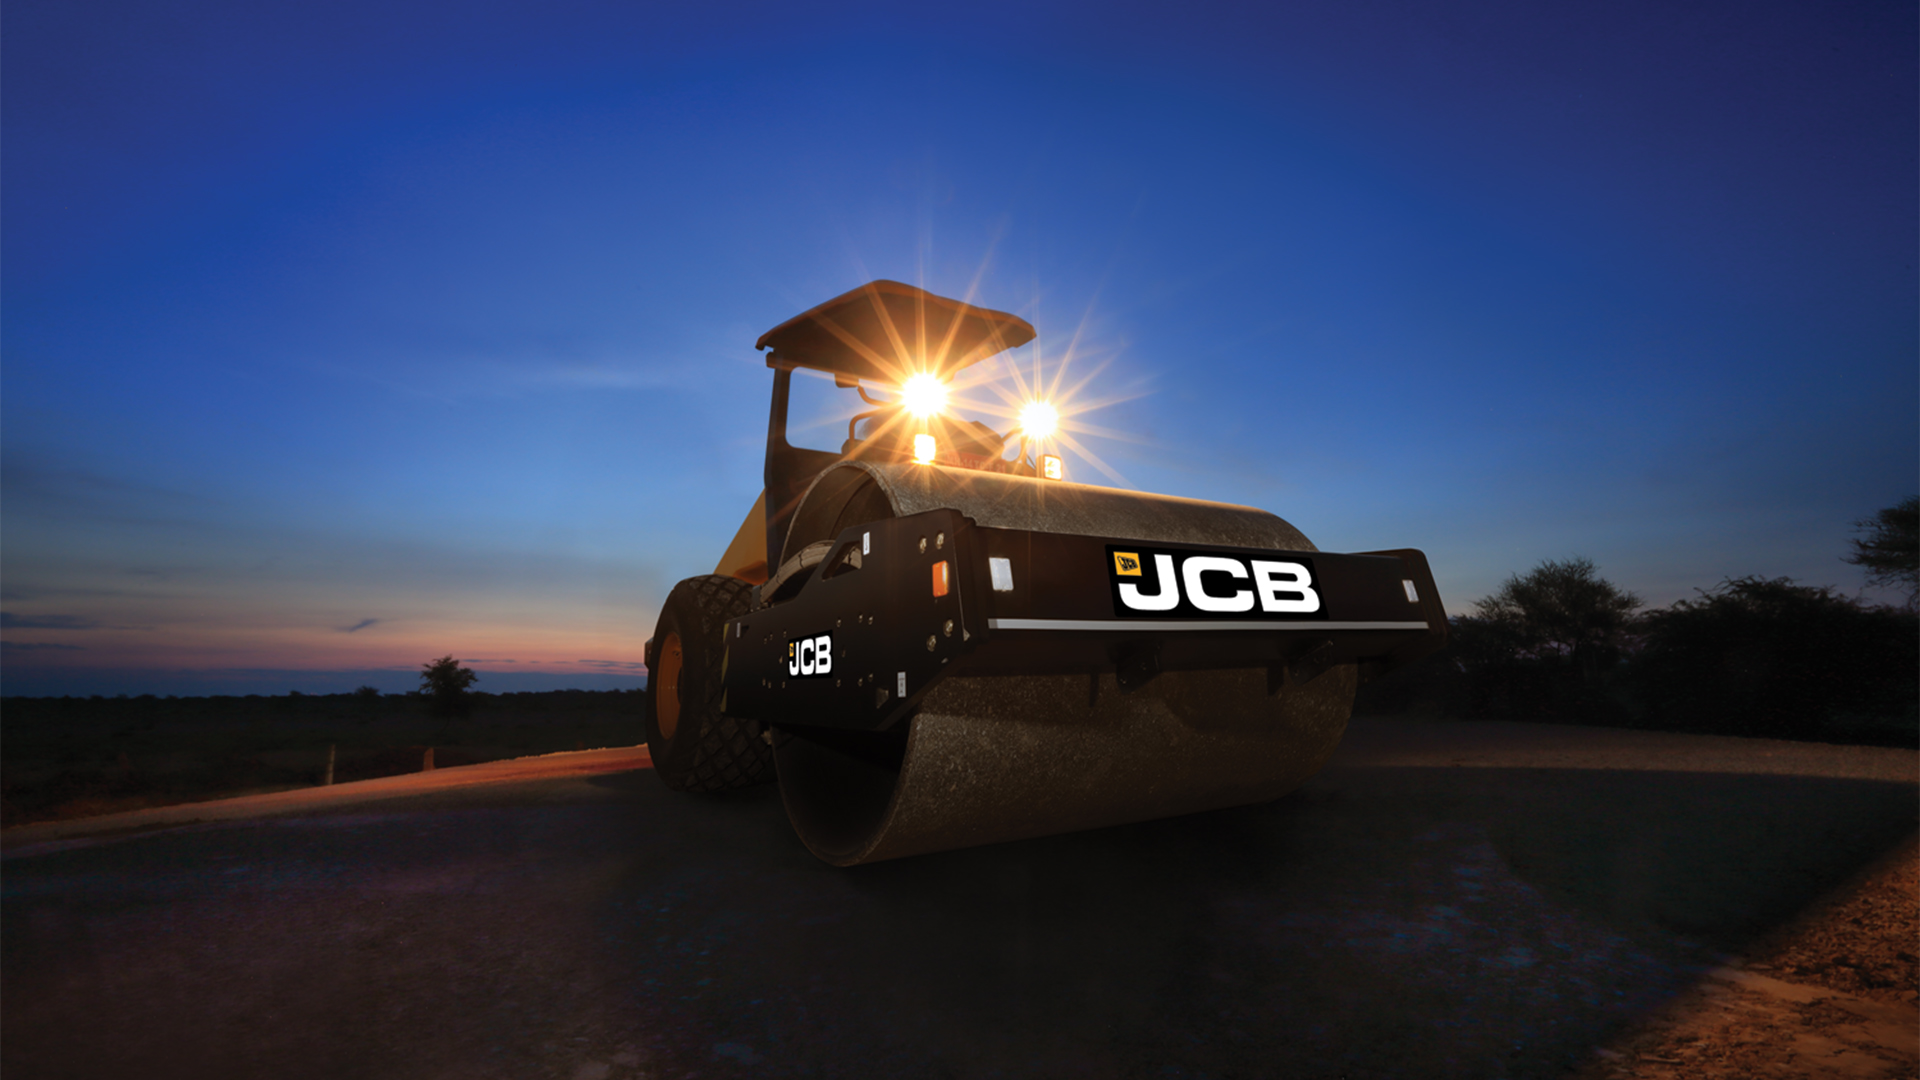 jcb in india Jcb india limited started operations in 1979 and today it is the fastest growing company in the indian earthmoving and construction equipment industry.